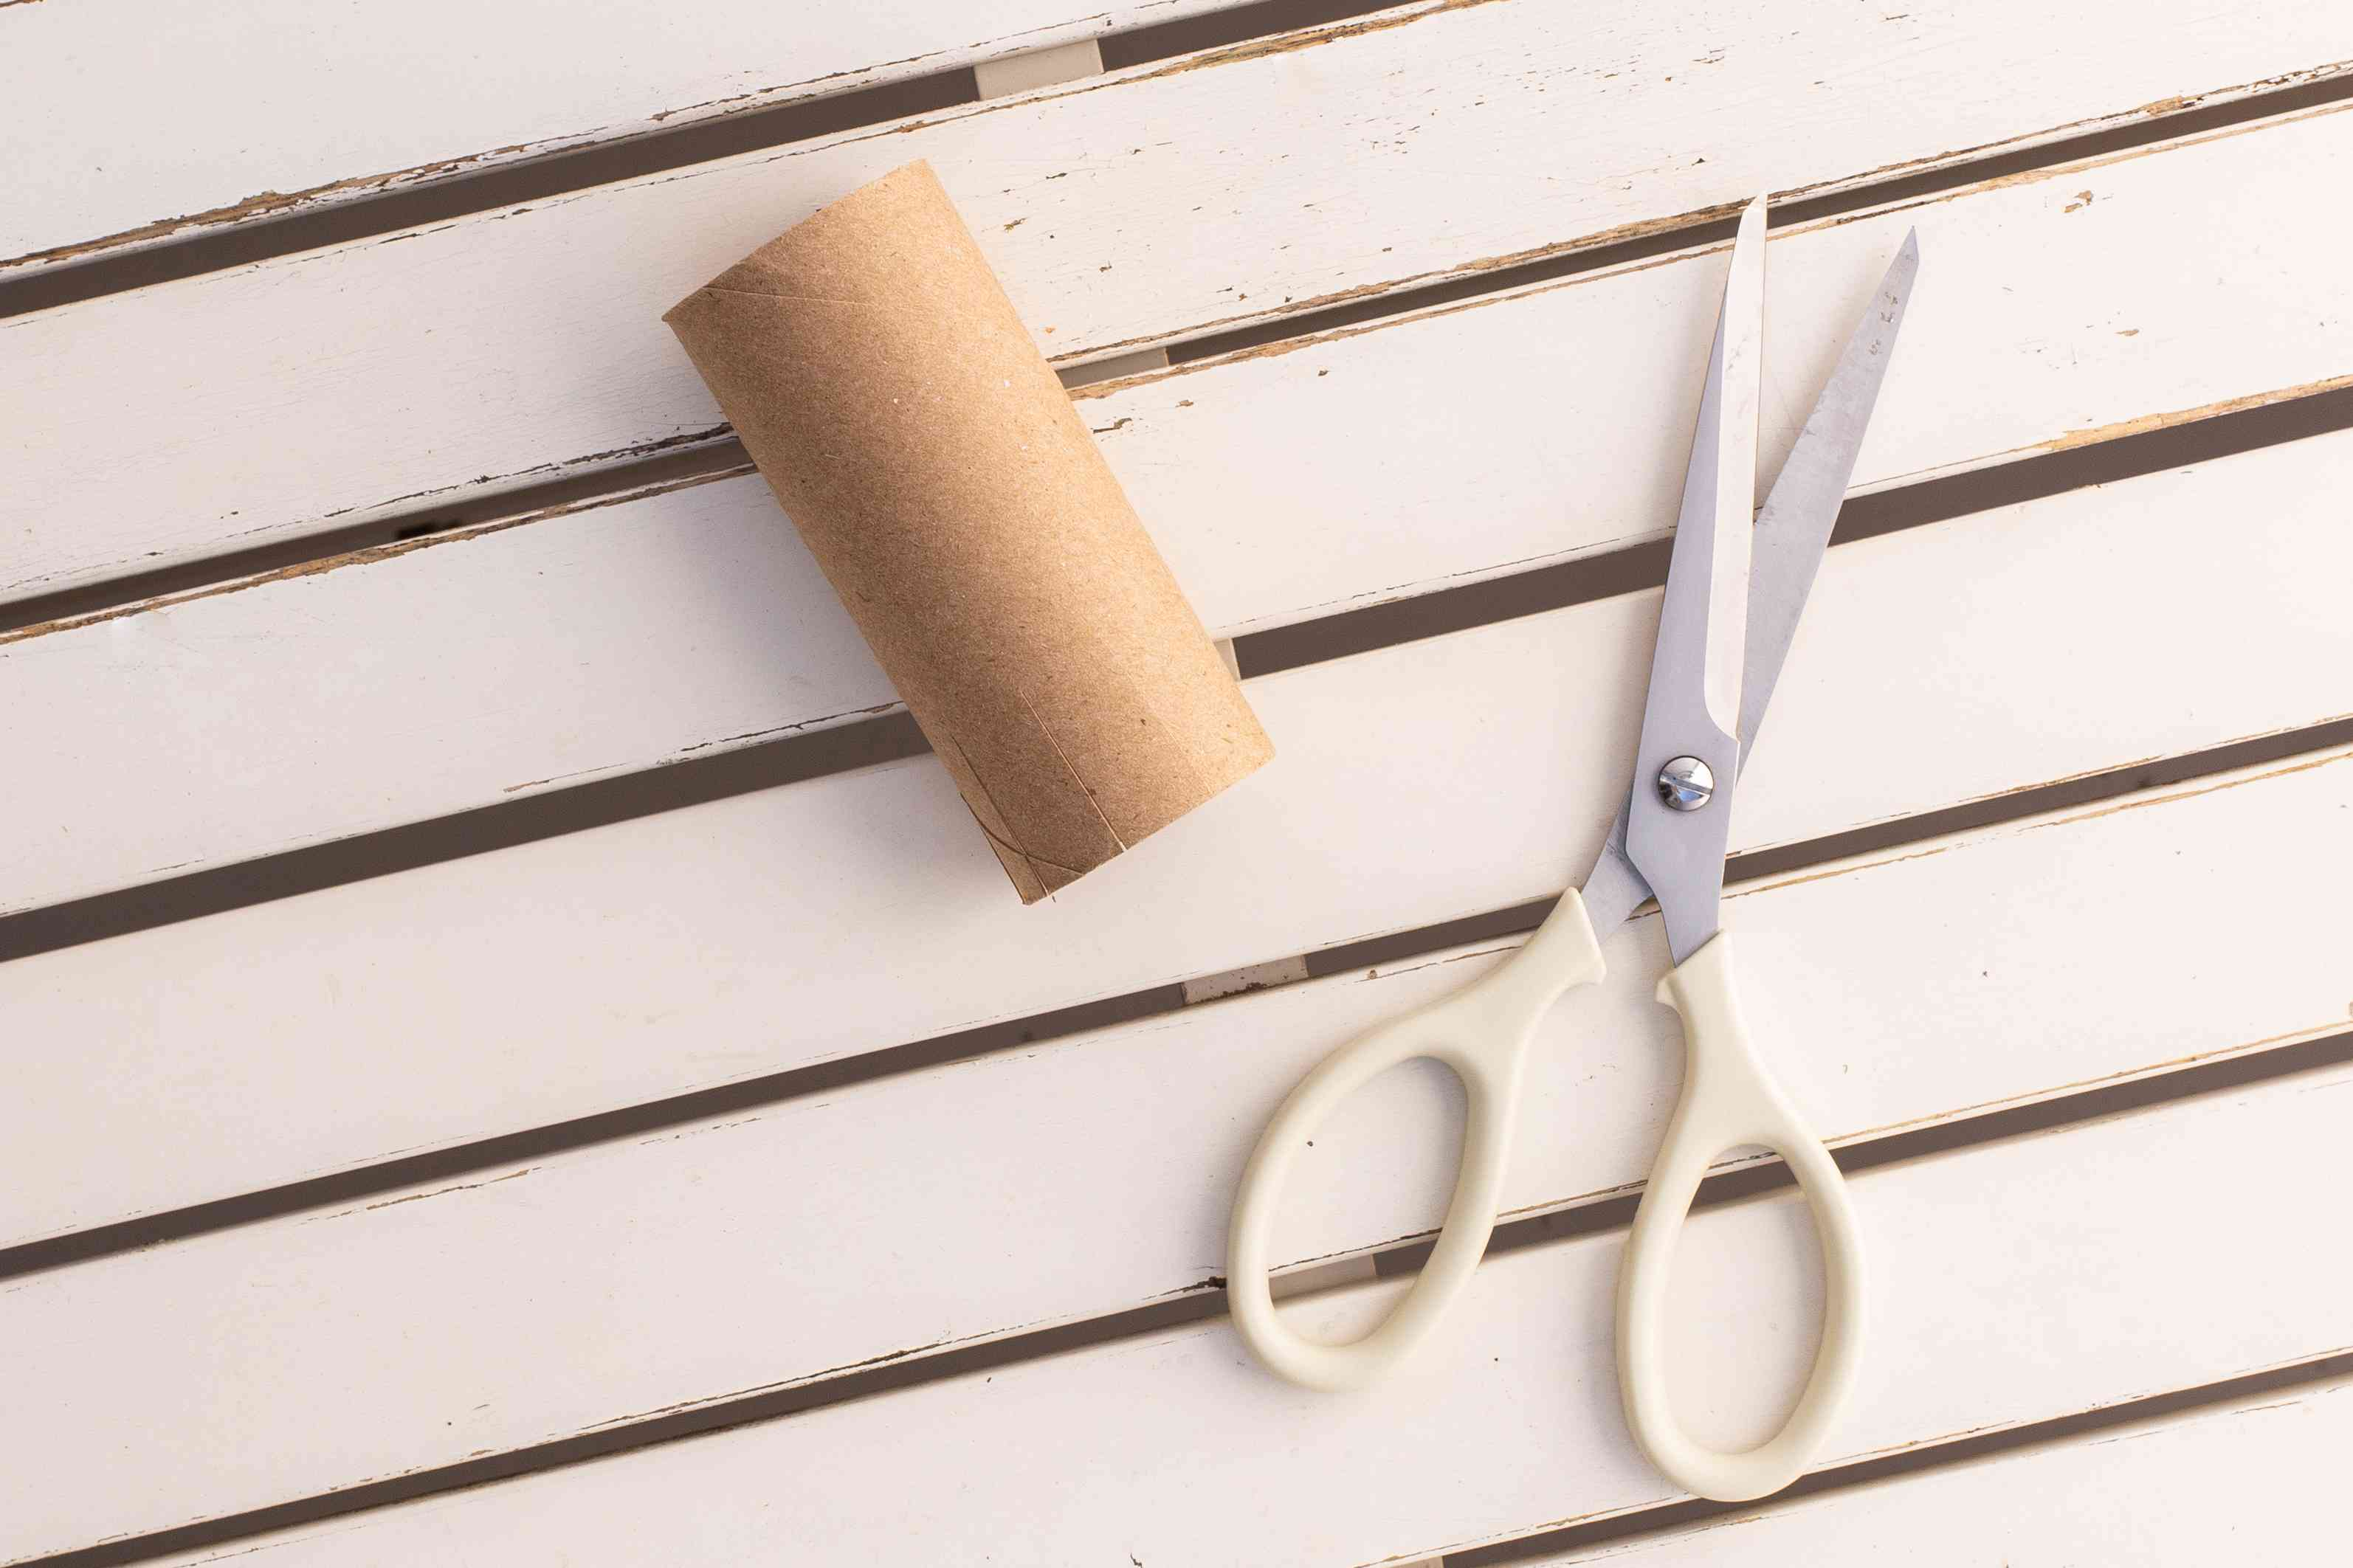 Toilet paper roll next to scissors on white wooden surface